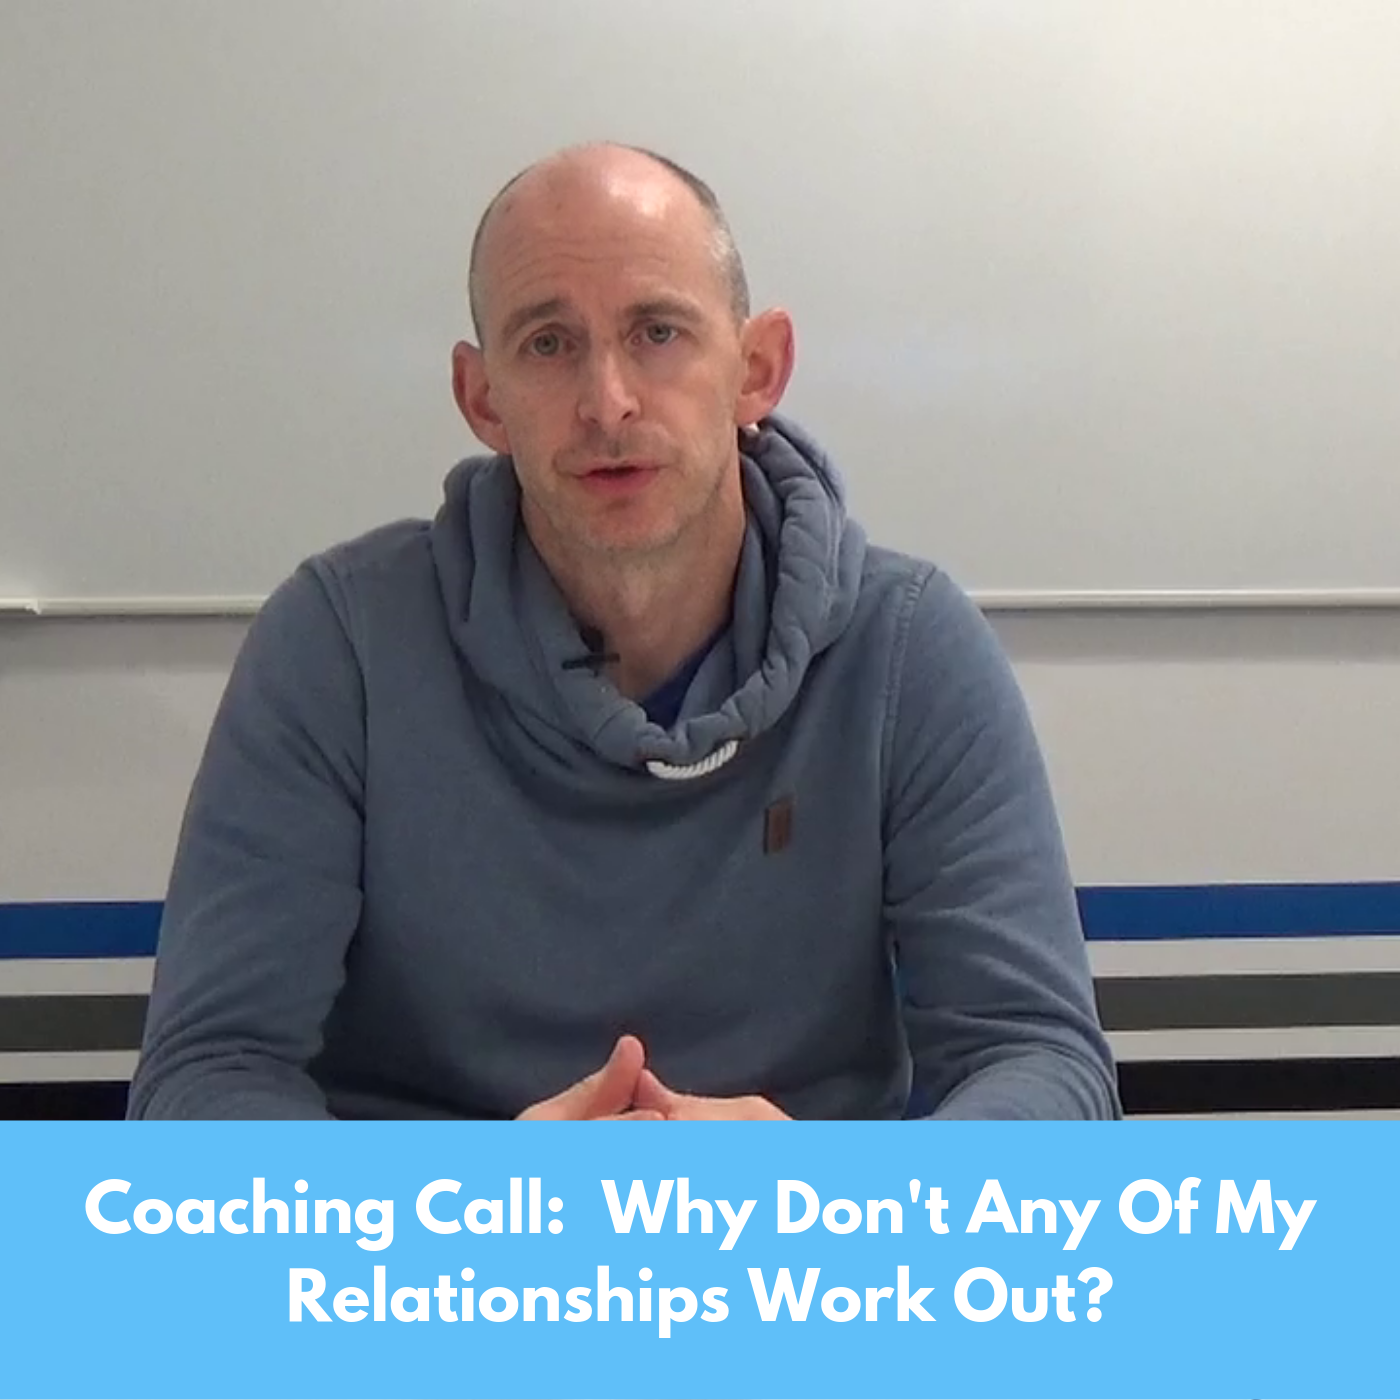 Why Don't Any Of My Relationships Workout?